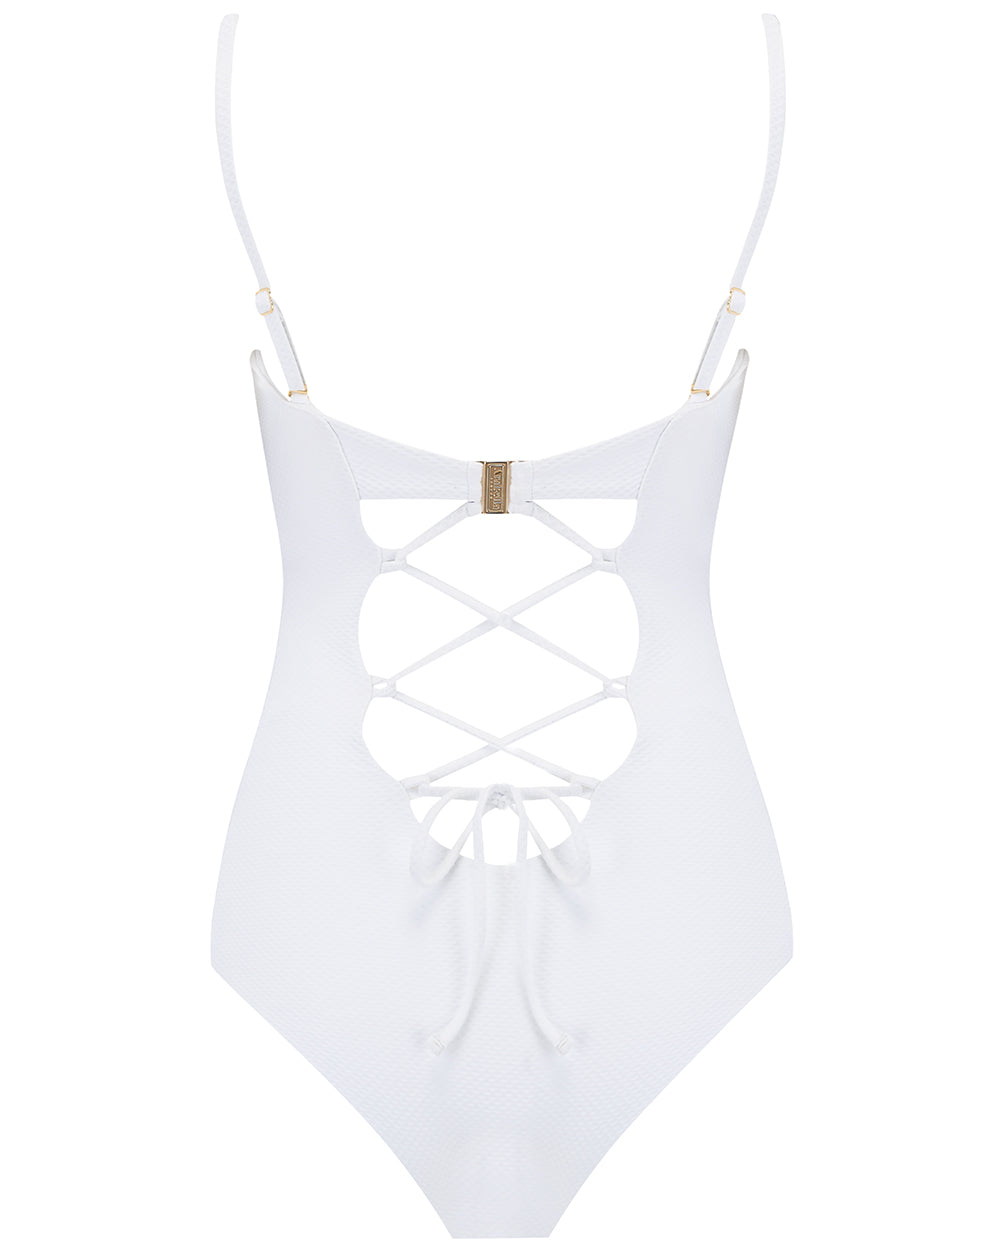 The 9.2.9 Swimsuit - Ivory (In Store ~ Selfridges)